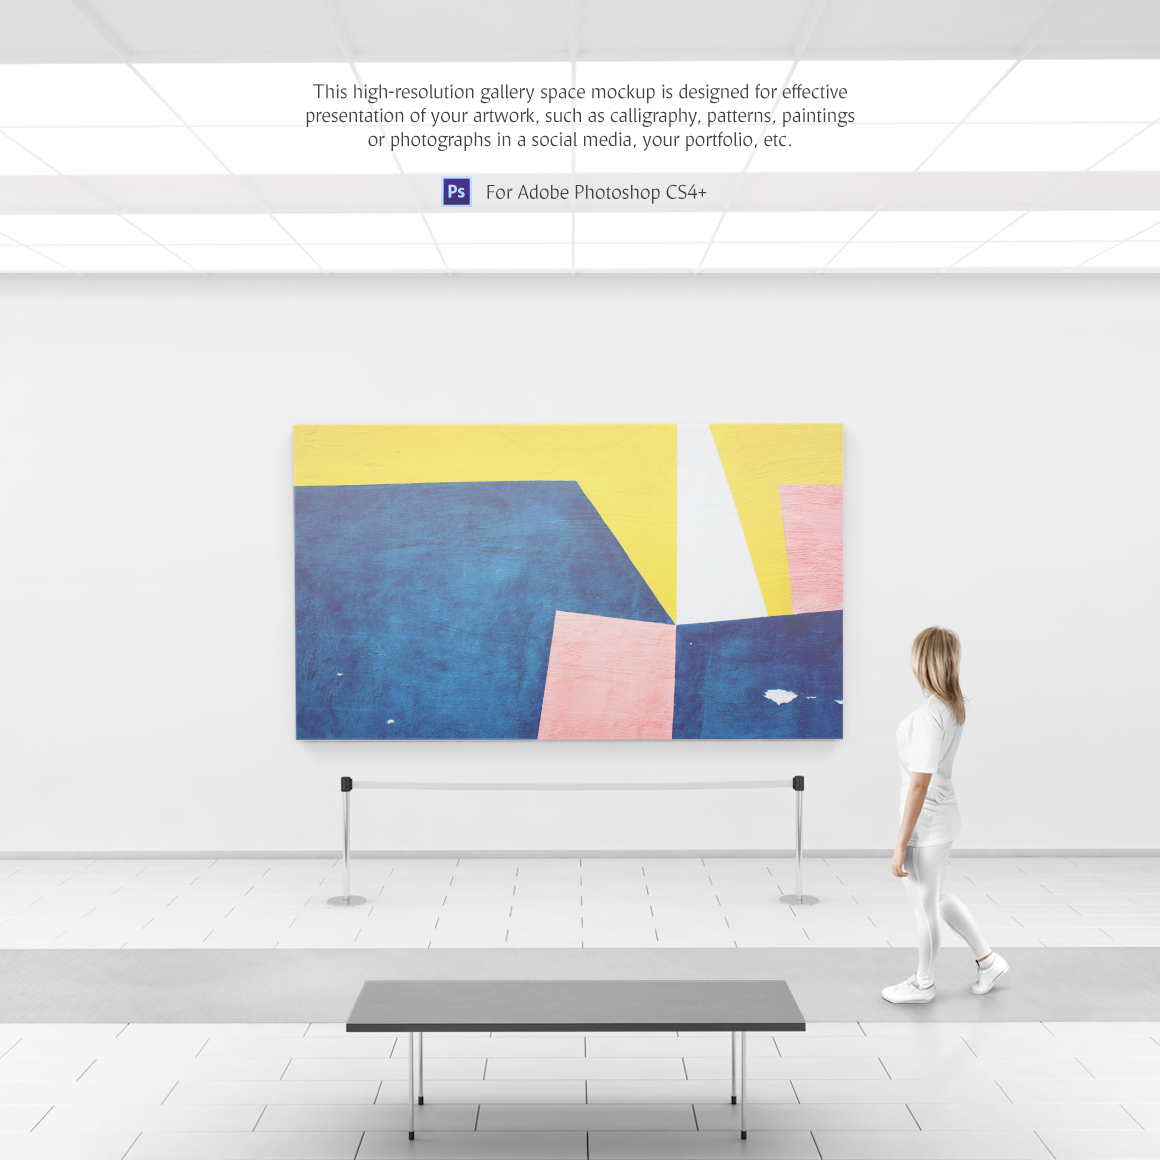 Art Gallery Mockup example image 2